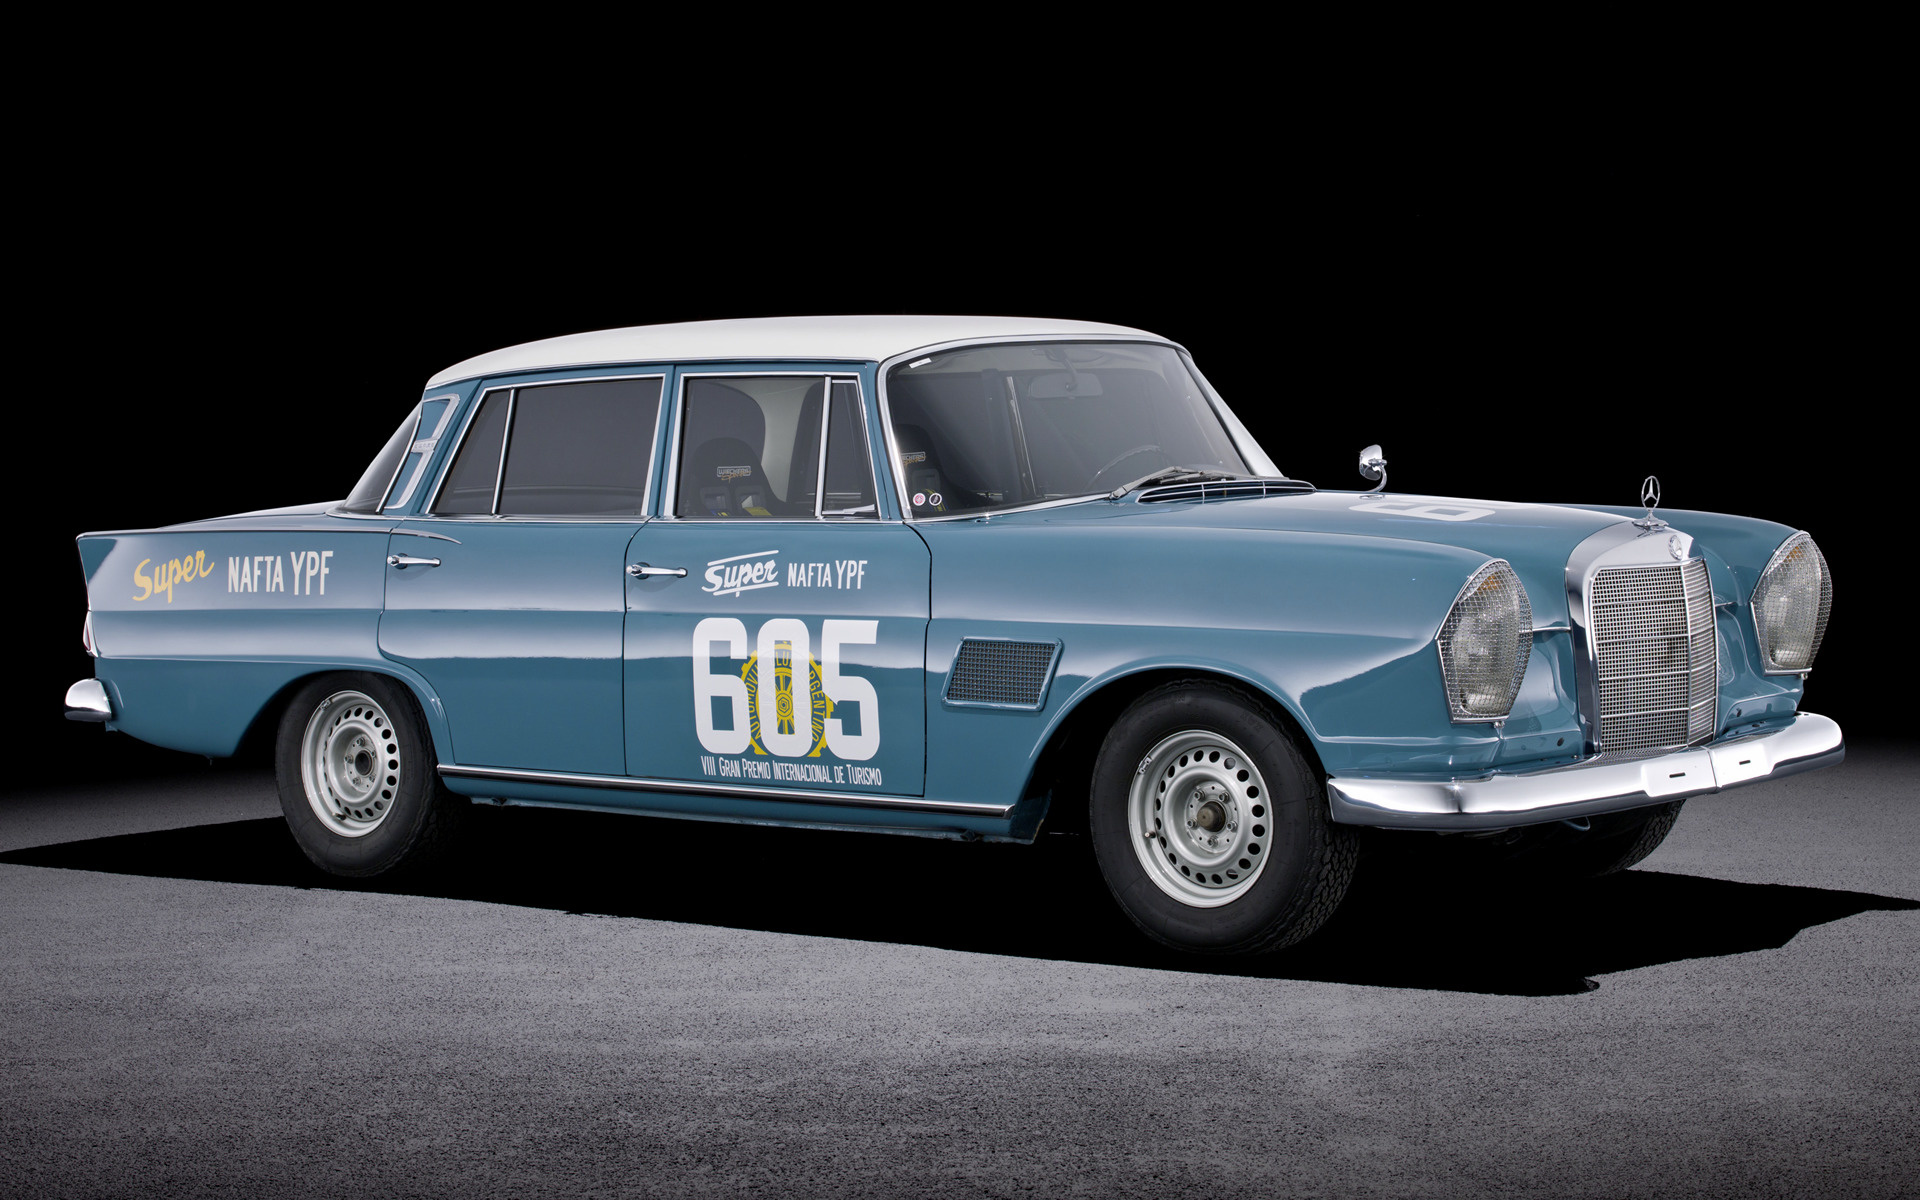 Mercedes-Benz 300 SE Rally Car (1963) Wallpapers and HD Images - Car ...